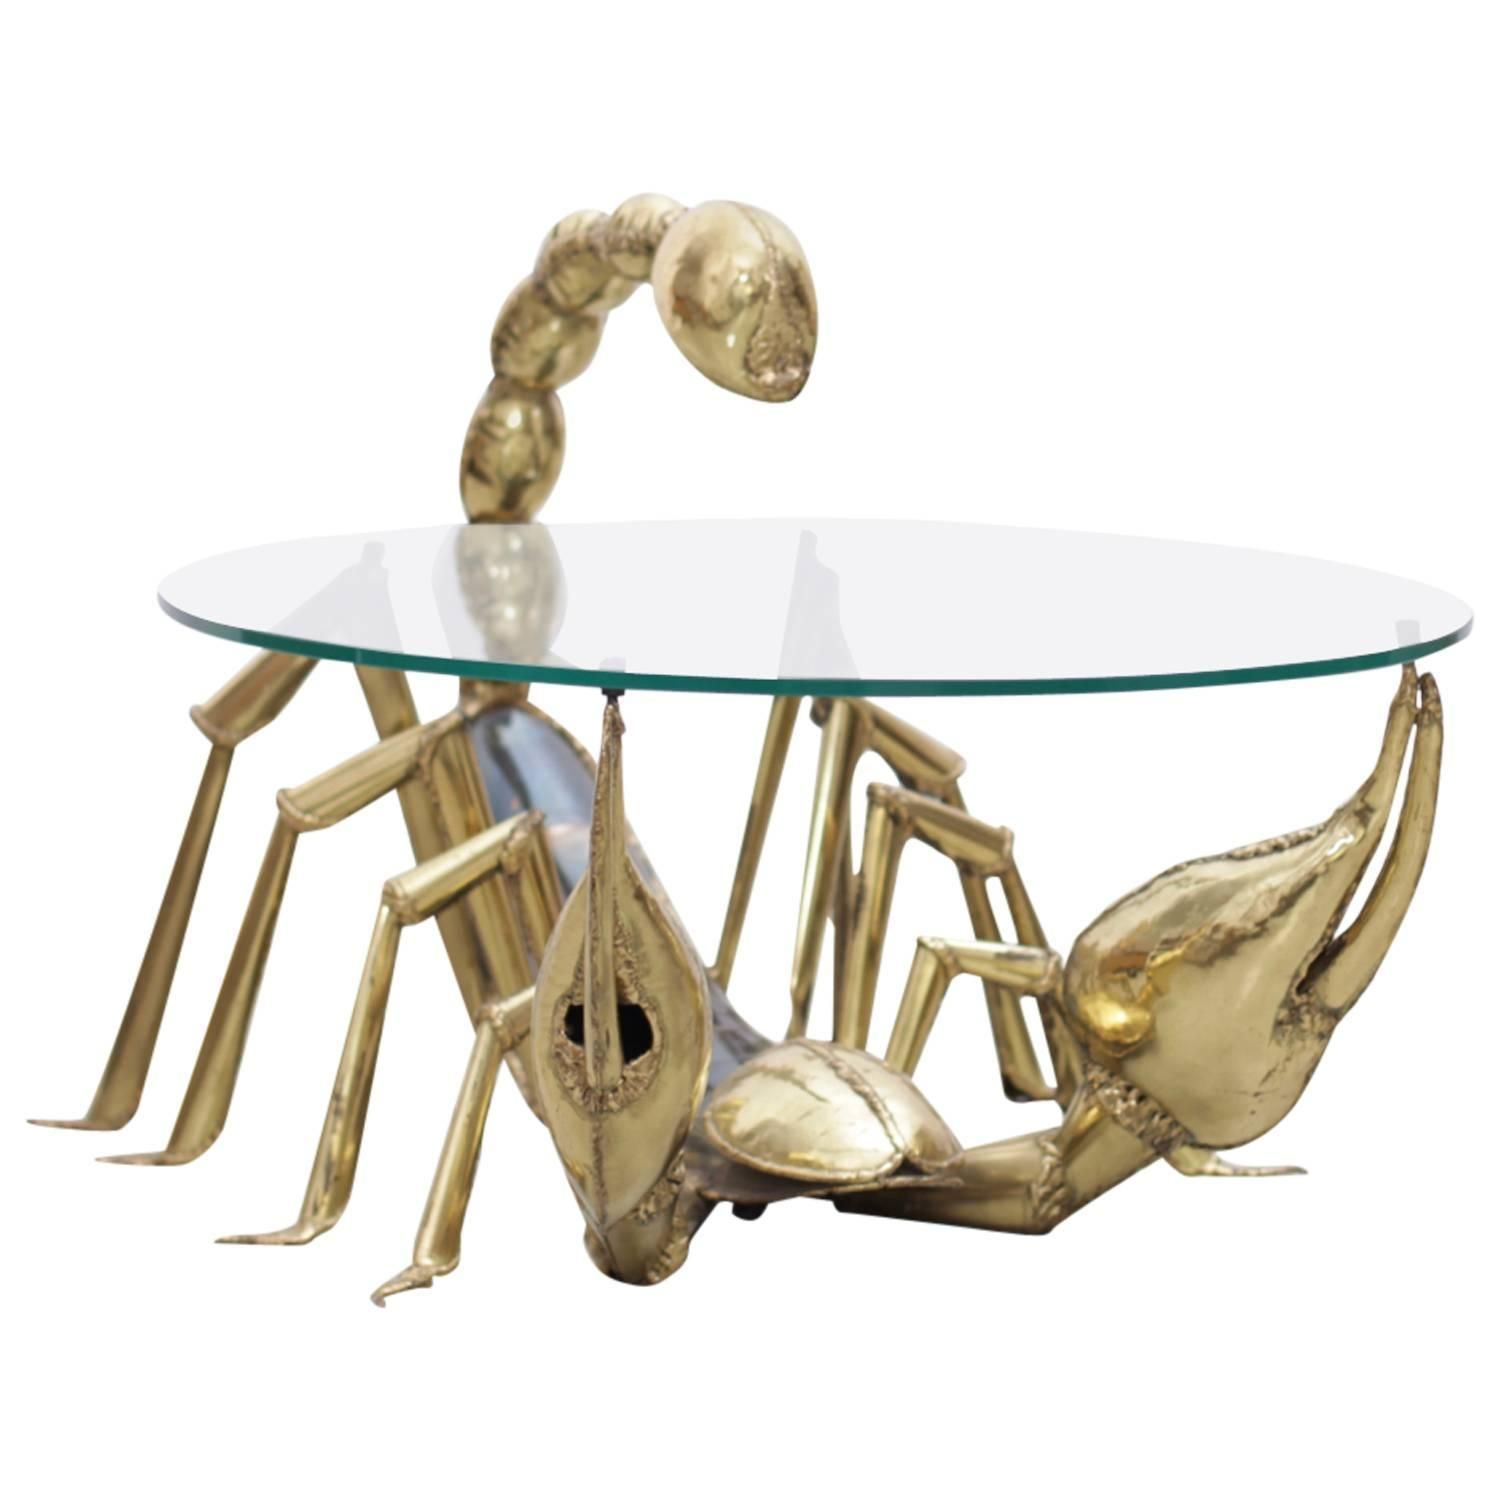 rare illuminated brass scorpion coffee table jacques duval antique gold faceted accent with glass top brasseur see more and outdoor fireplace white cloth placemats pineapple